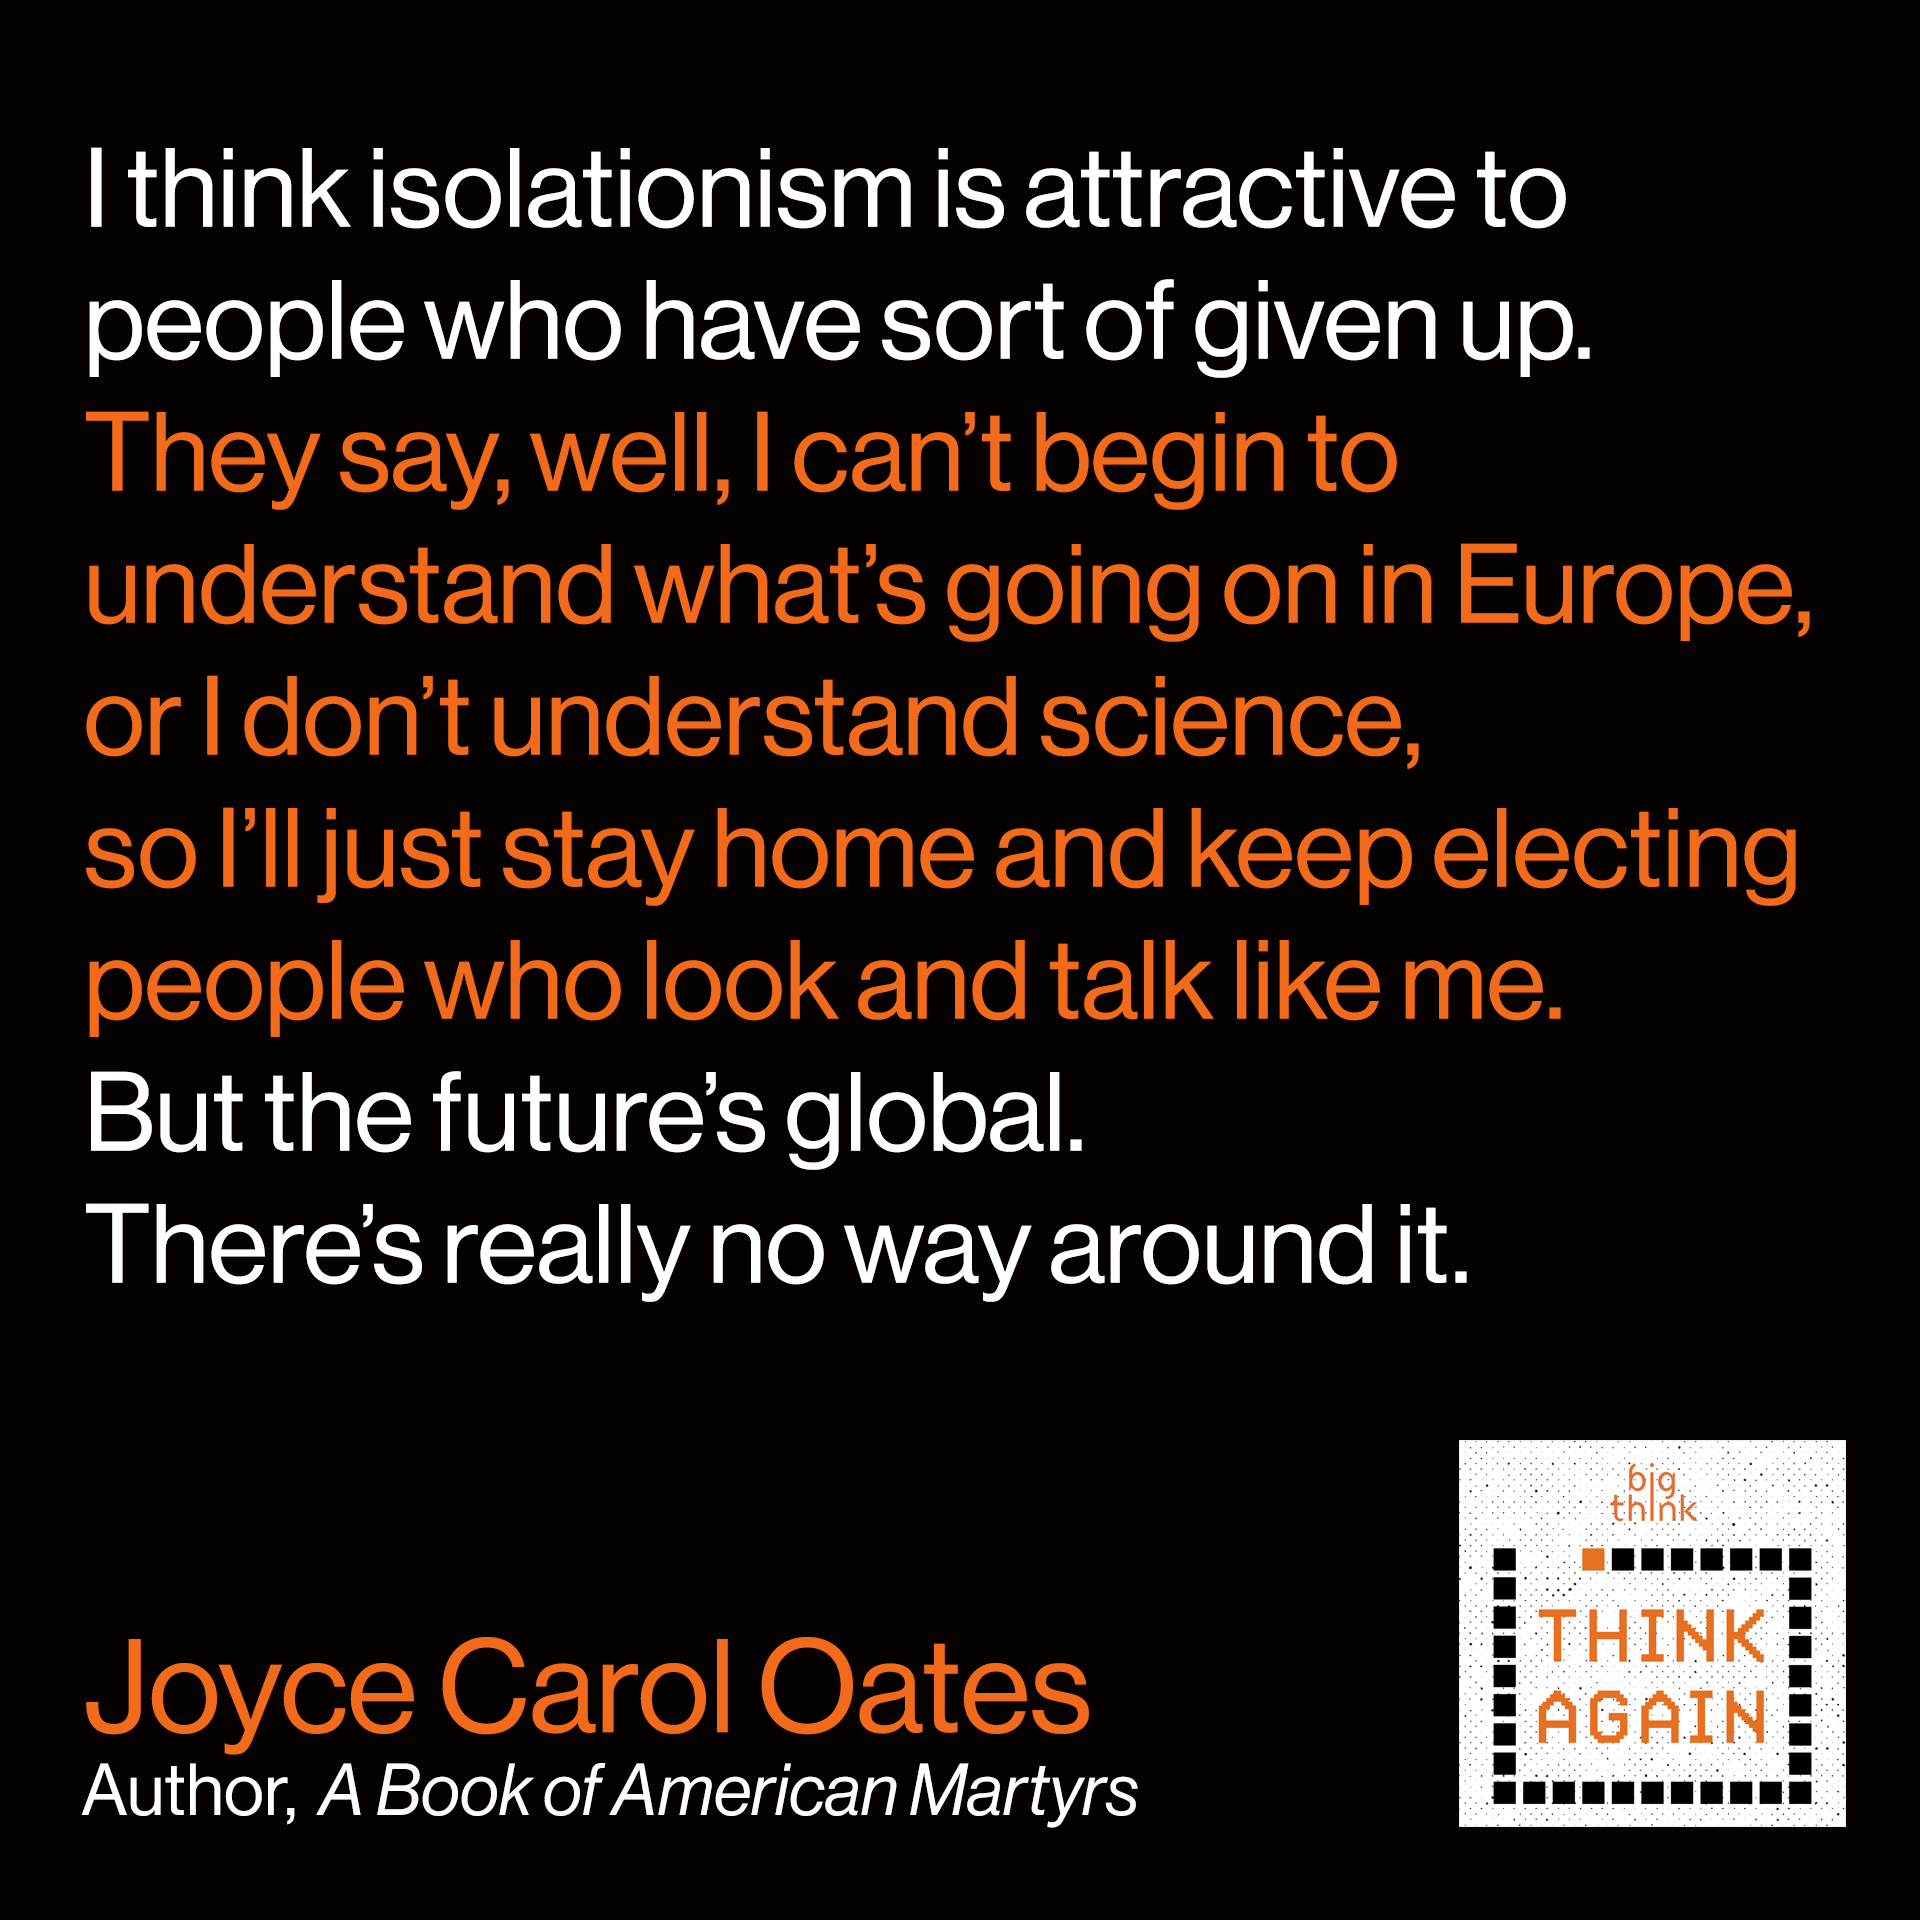 Joyce Carol Oates Quote: I think isolationism is attractive to people who have sort of given up. They say, well, I can't begin to understand what's going on in Europe, or I don't understand science, so I'll just stay home and keep electing people who look and talk like me. But the future's global. There's really nothing we can do about it.